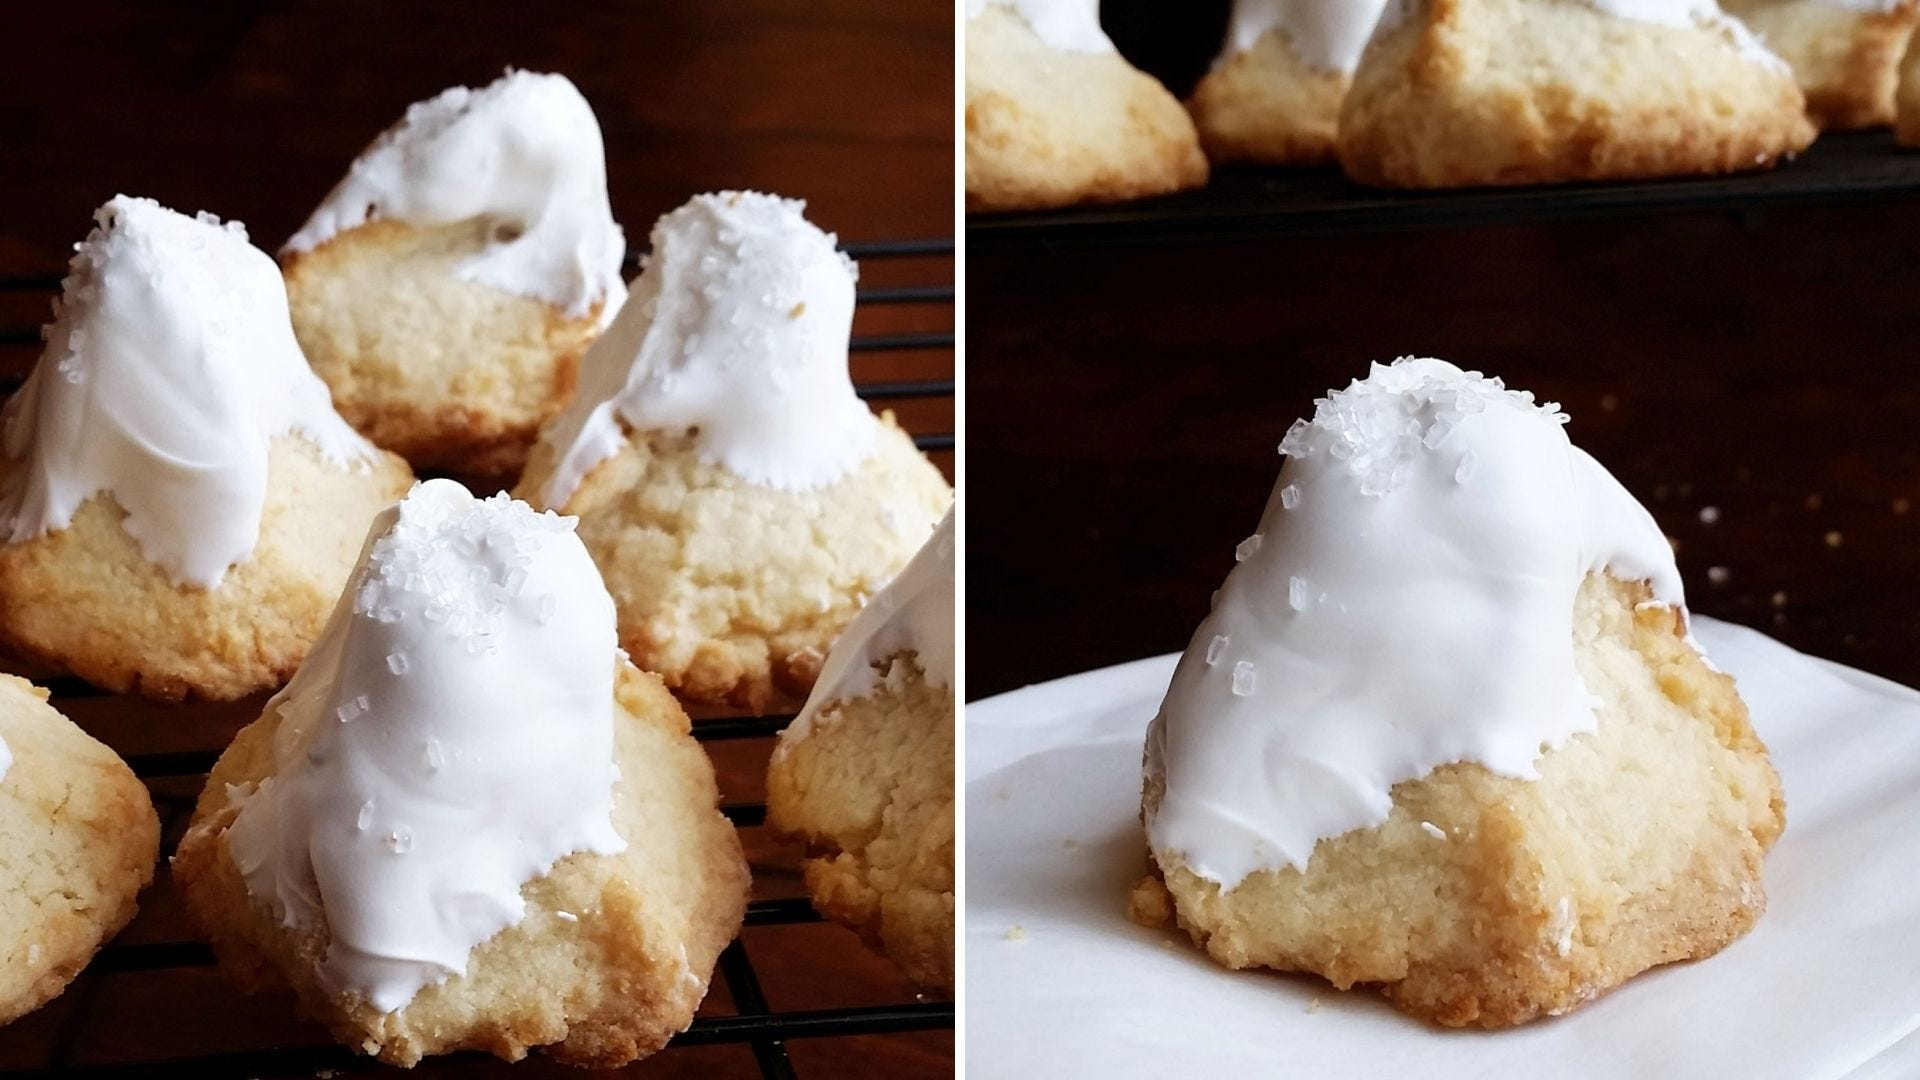 A pile of macaroon cookies shaped like mountains and coated in white chocolate